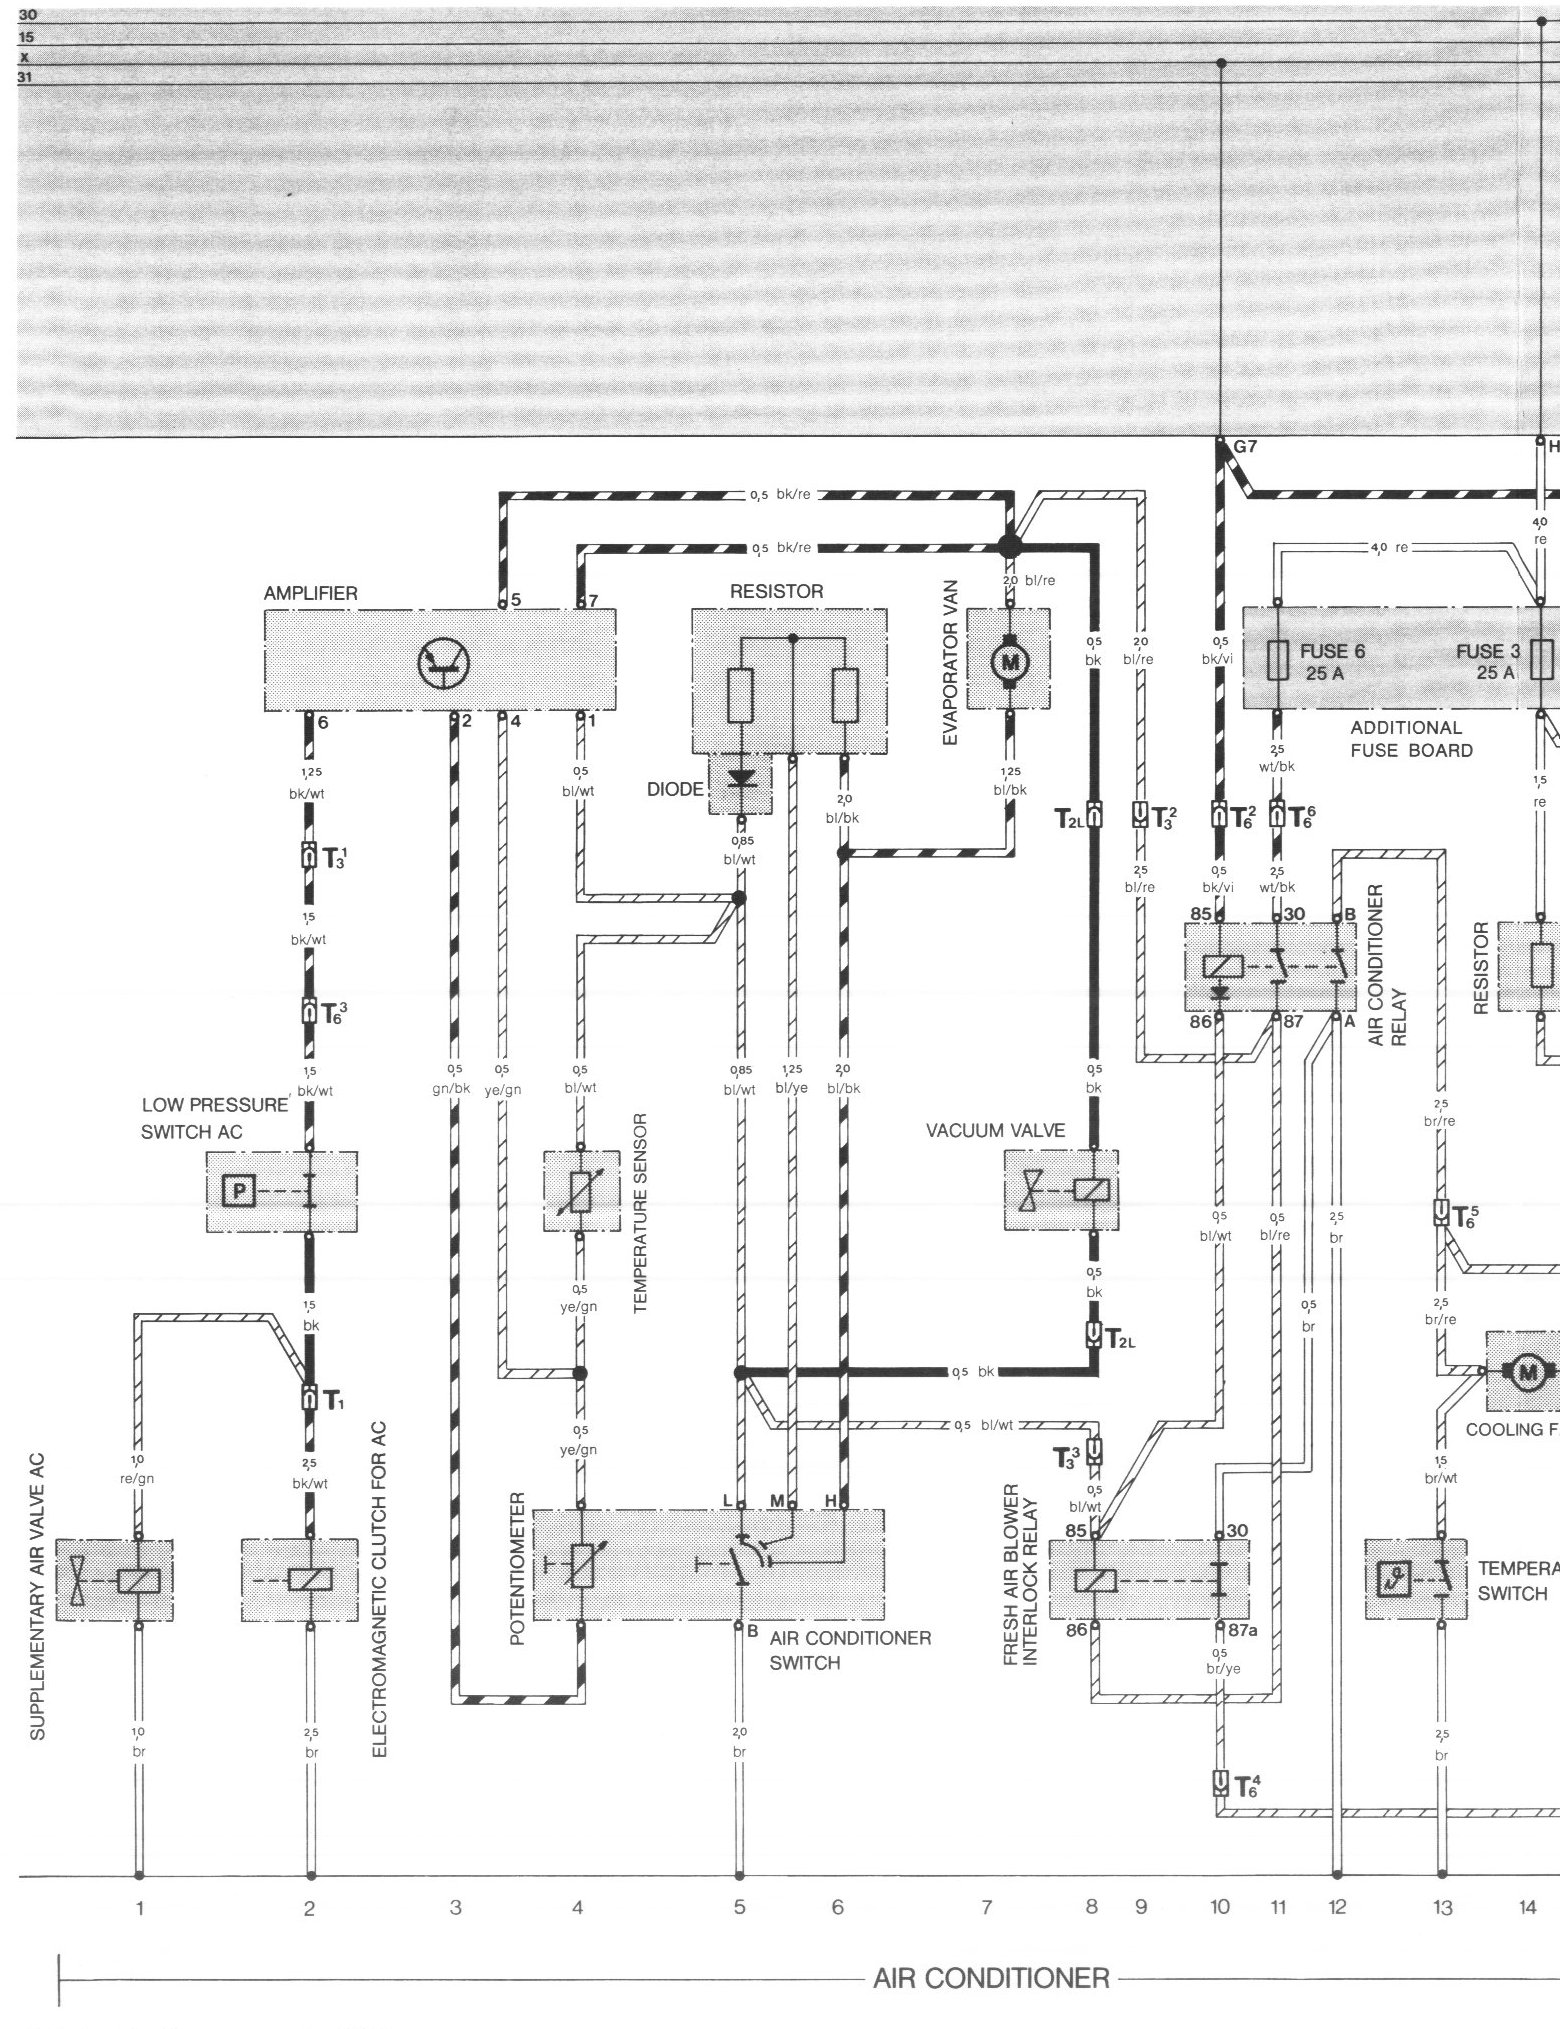 944_84_AC_1 pelican parts porsche 924 944 electrical diagrams 1983 porsche 944 fuse box diagram at mifinder.co